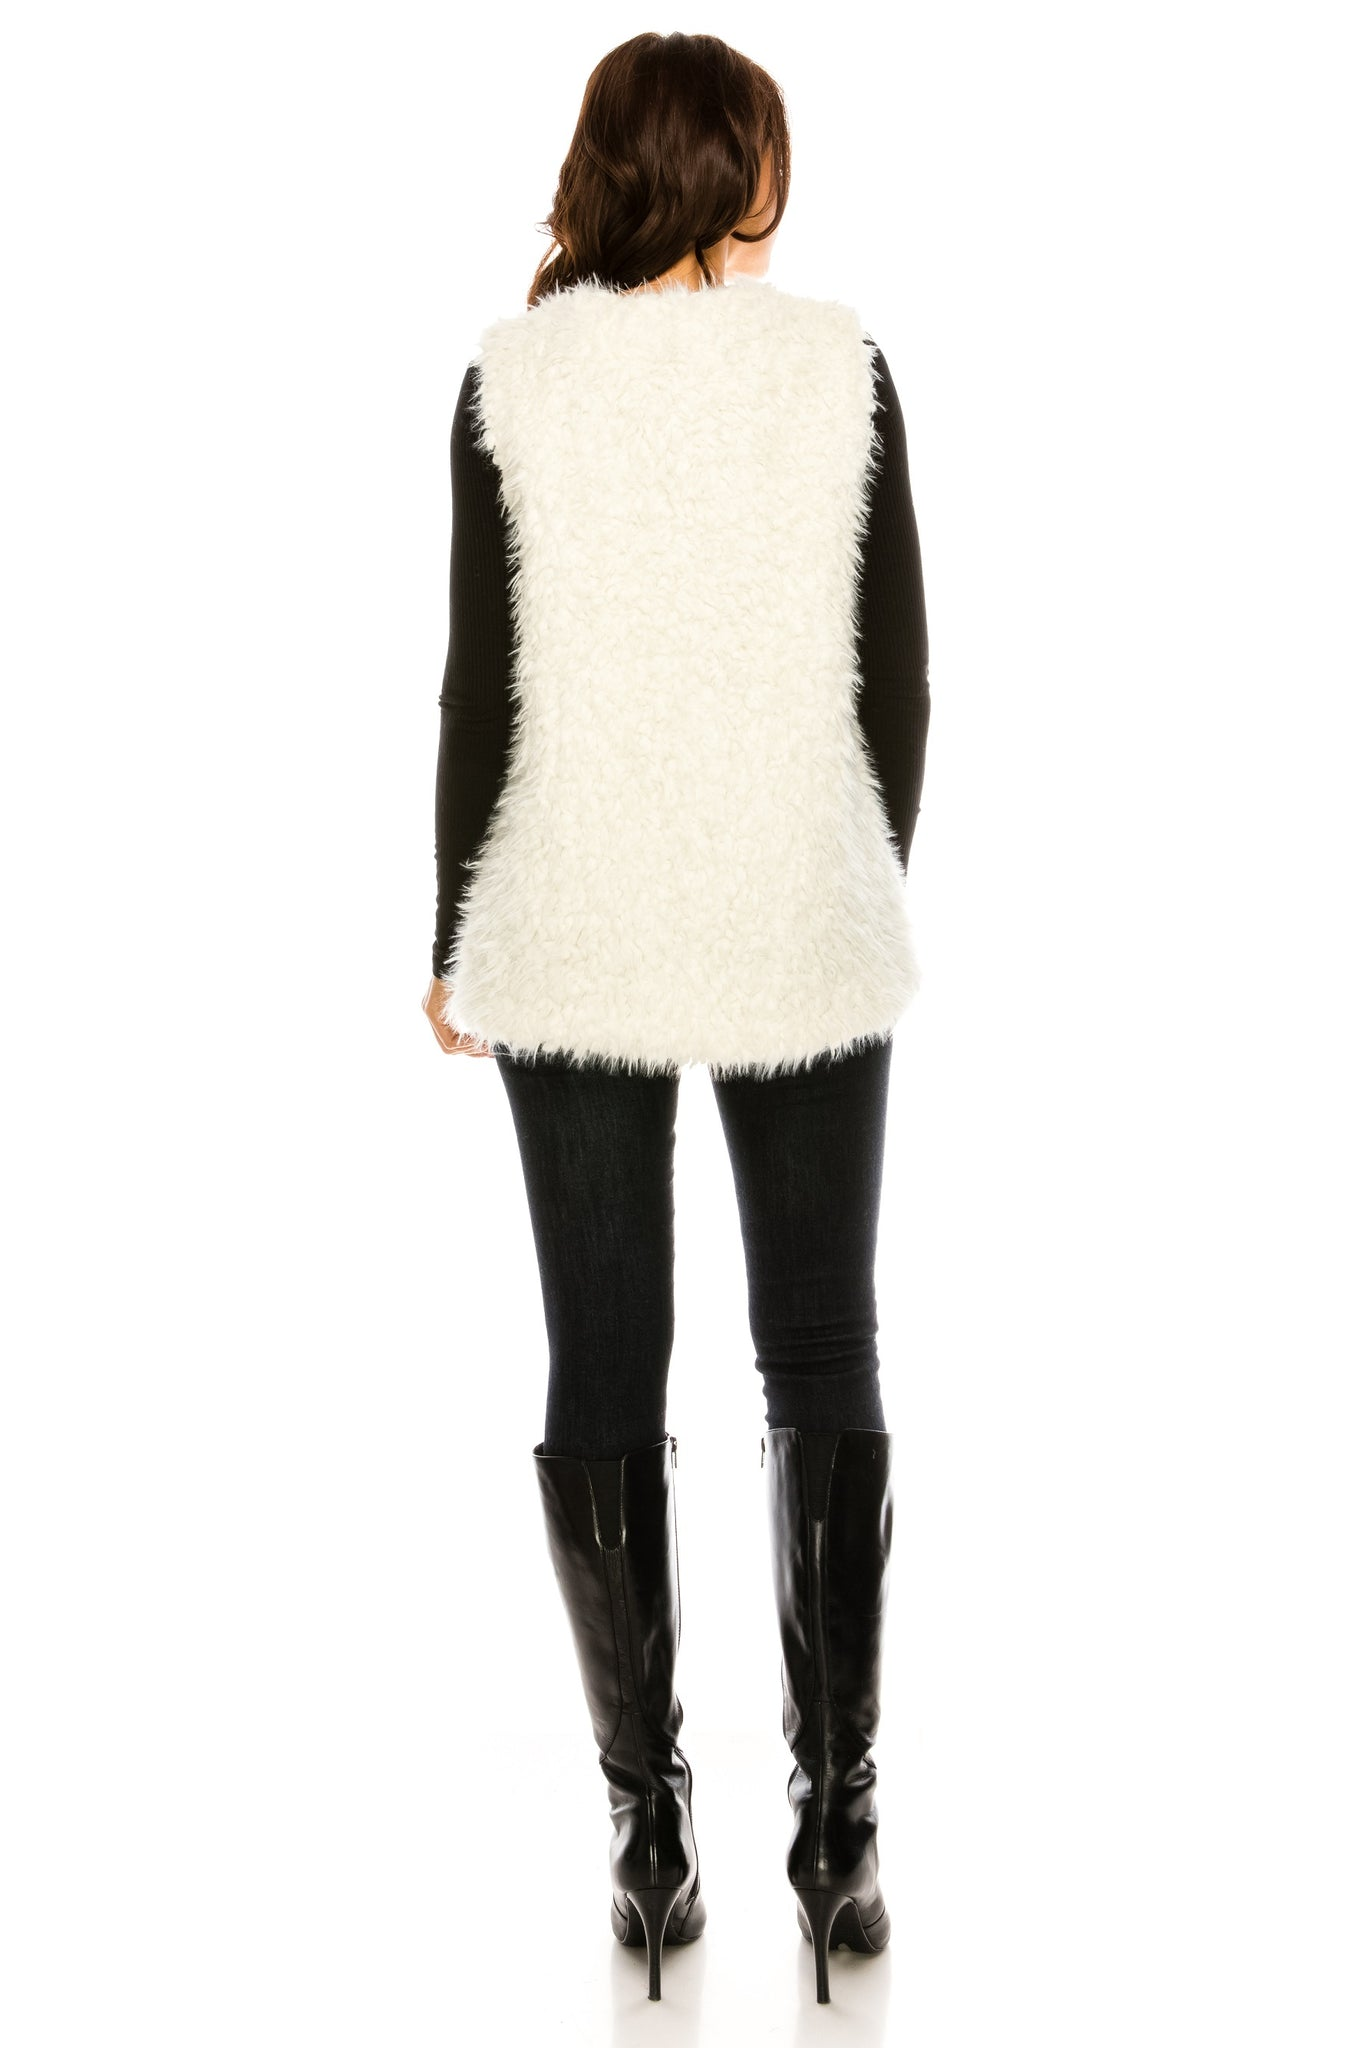 PC-105IV Faux fur vest